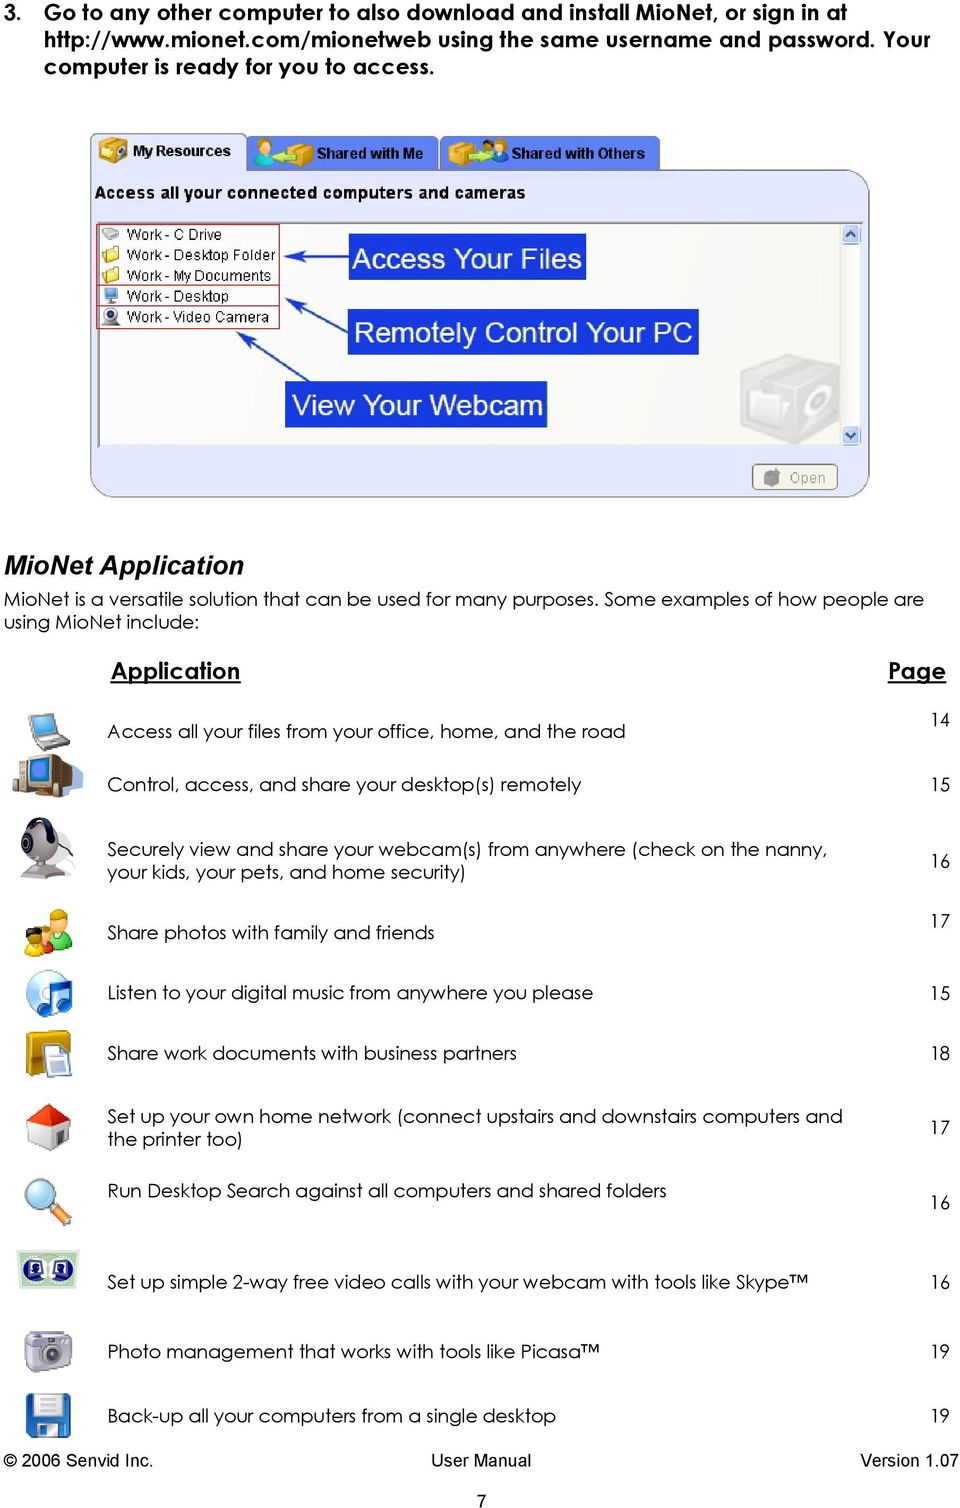 Some examples of how people are using MioNet include: Application Access all your files from your office, home, and the road Page 14 Control, access, and share your desktop(s) remotely 15 Securely